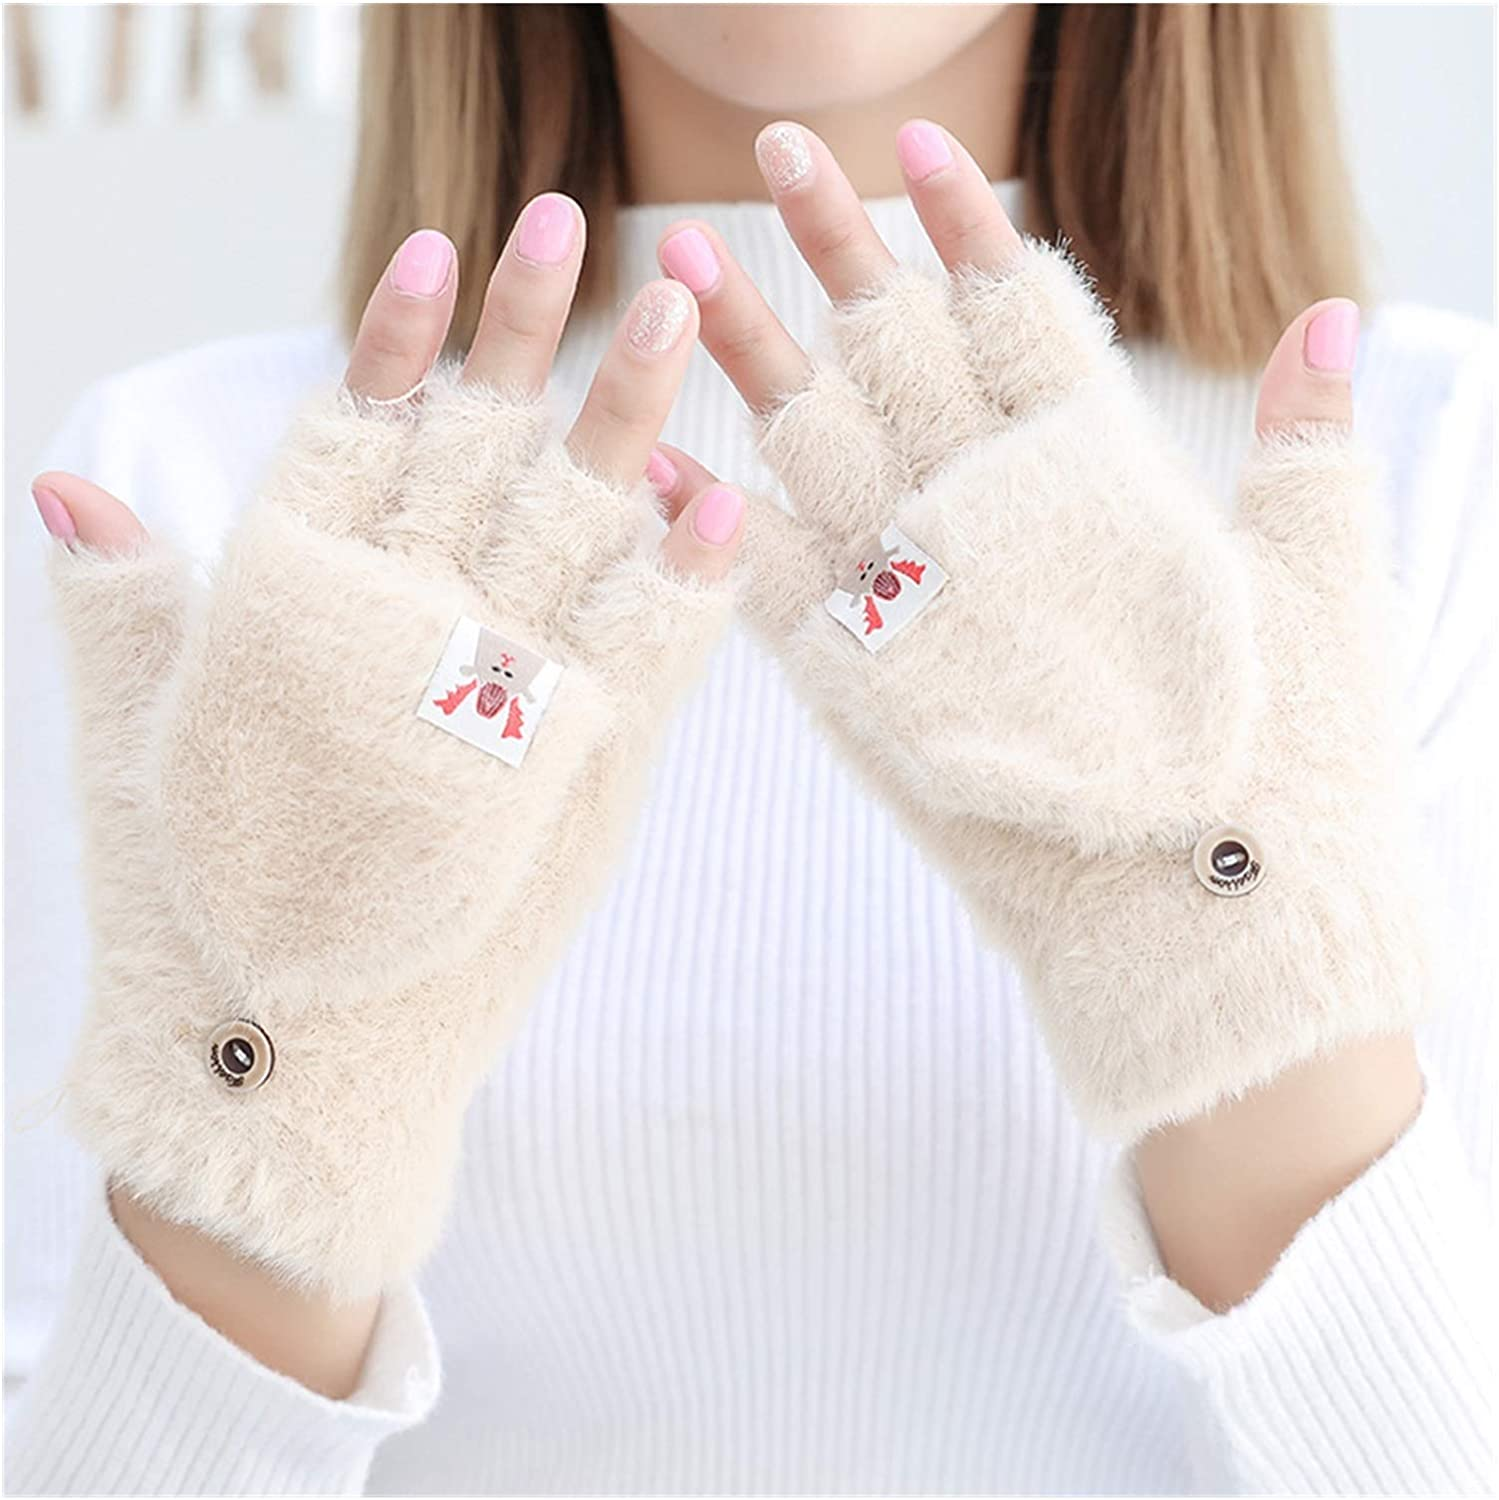 XIAOQIU Gloves Women's Winter Warm Gloves Touch Screen Gloves Cute Fingerless Gloves Knitted Fluff Outdoor Flip Cover Gloves Mittens (Color : Yellow, Gloves Size : T)